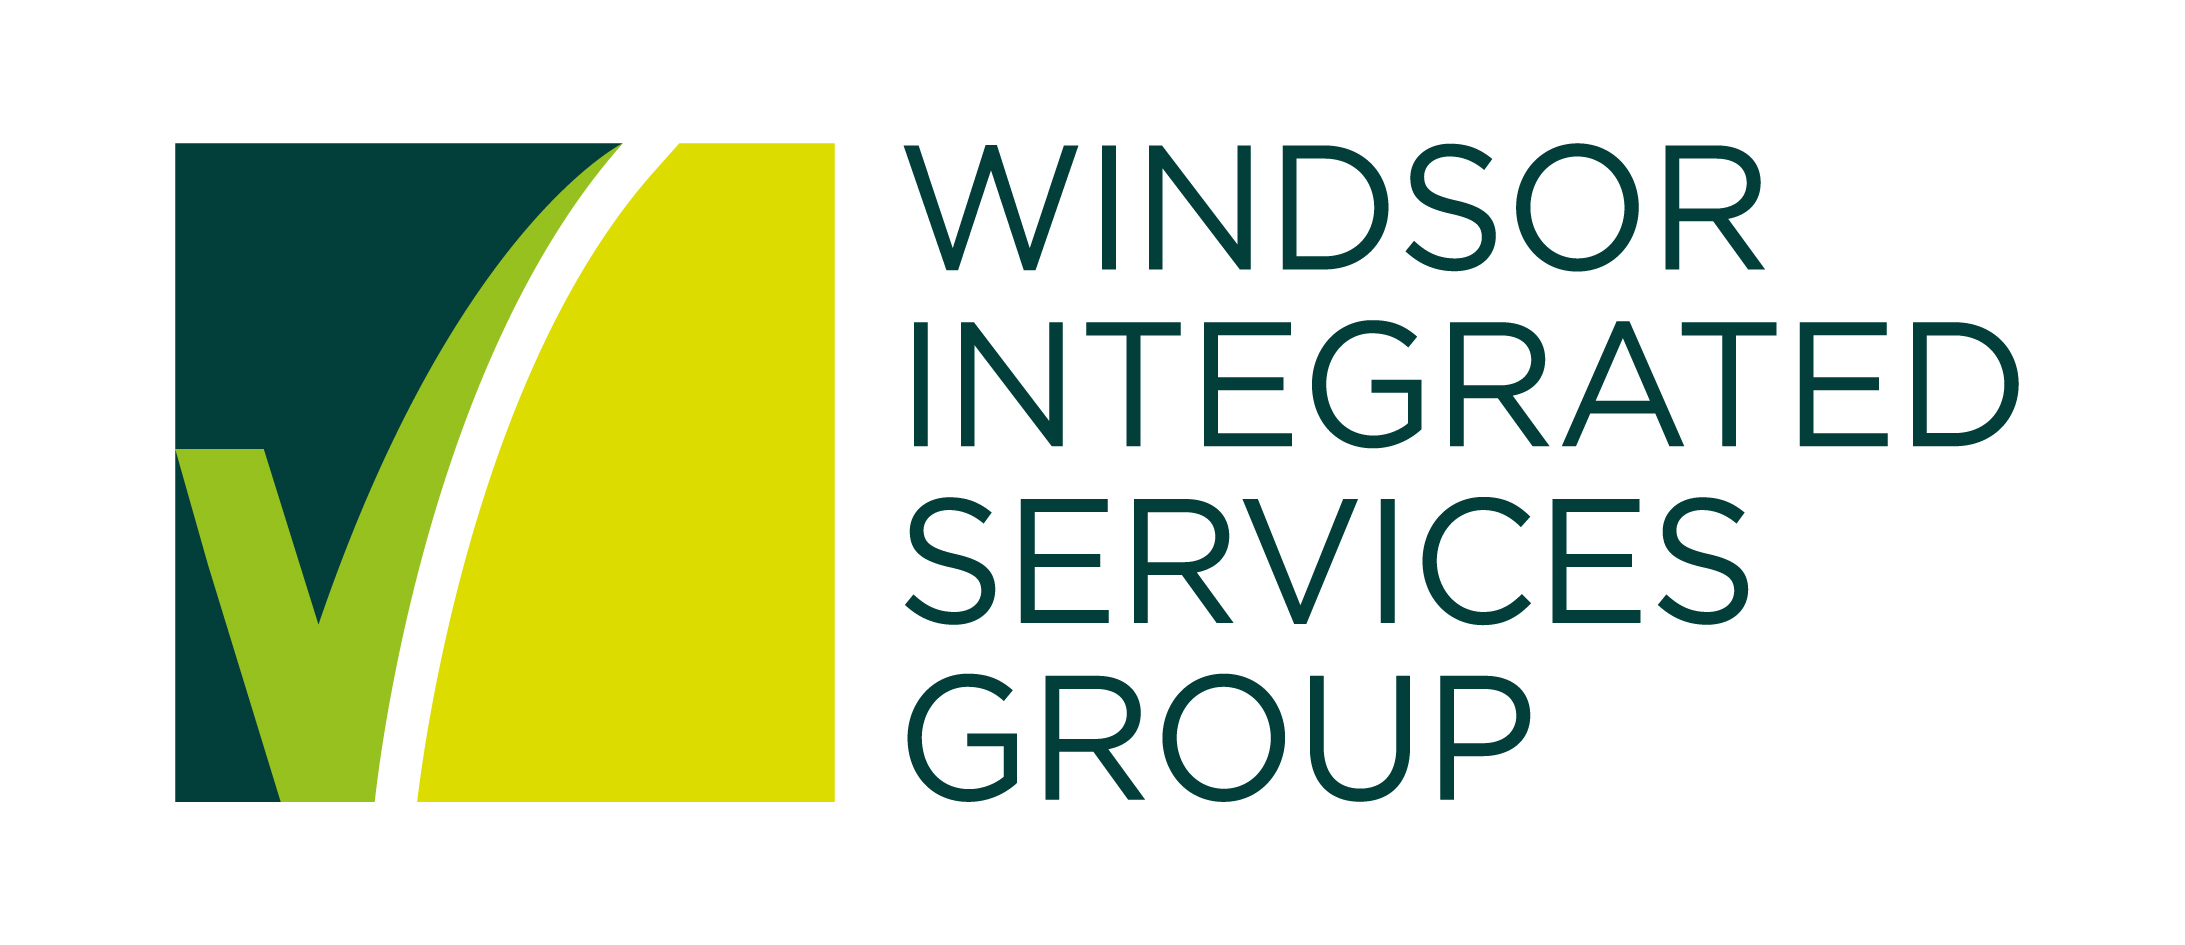 Windsor Integrated Services Group